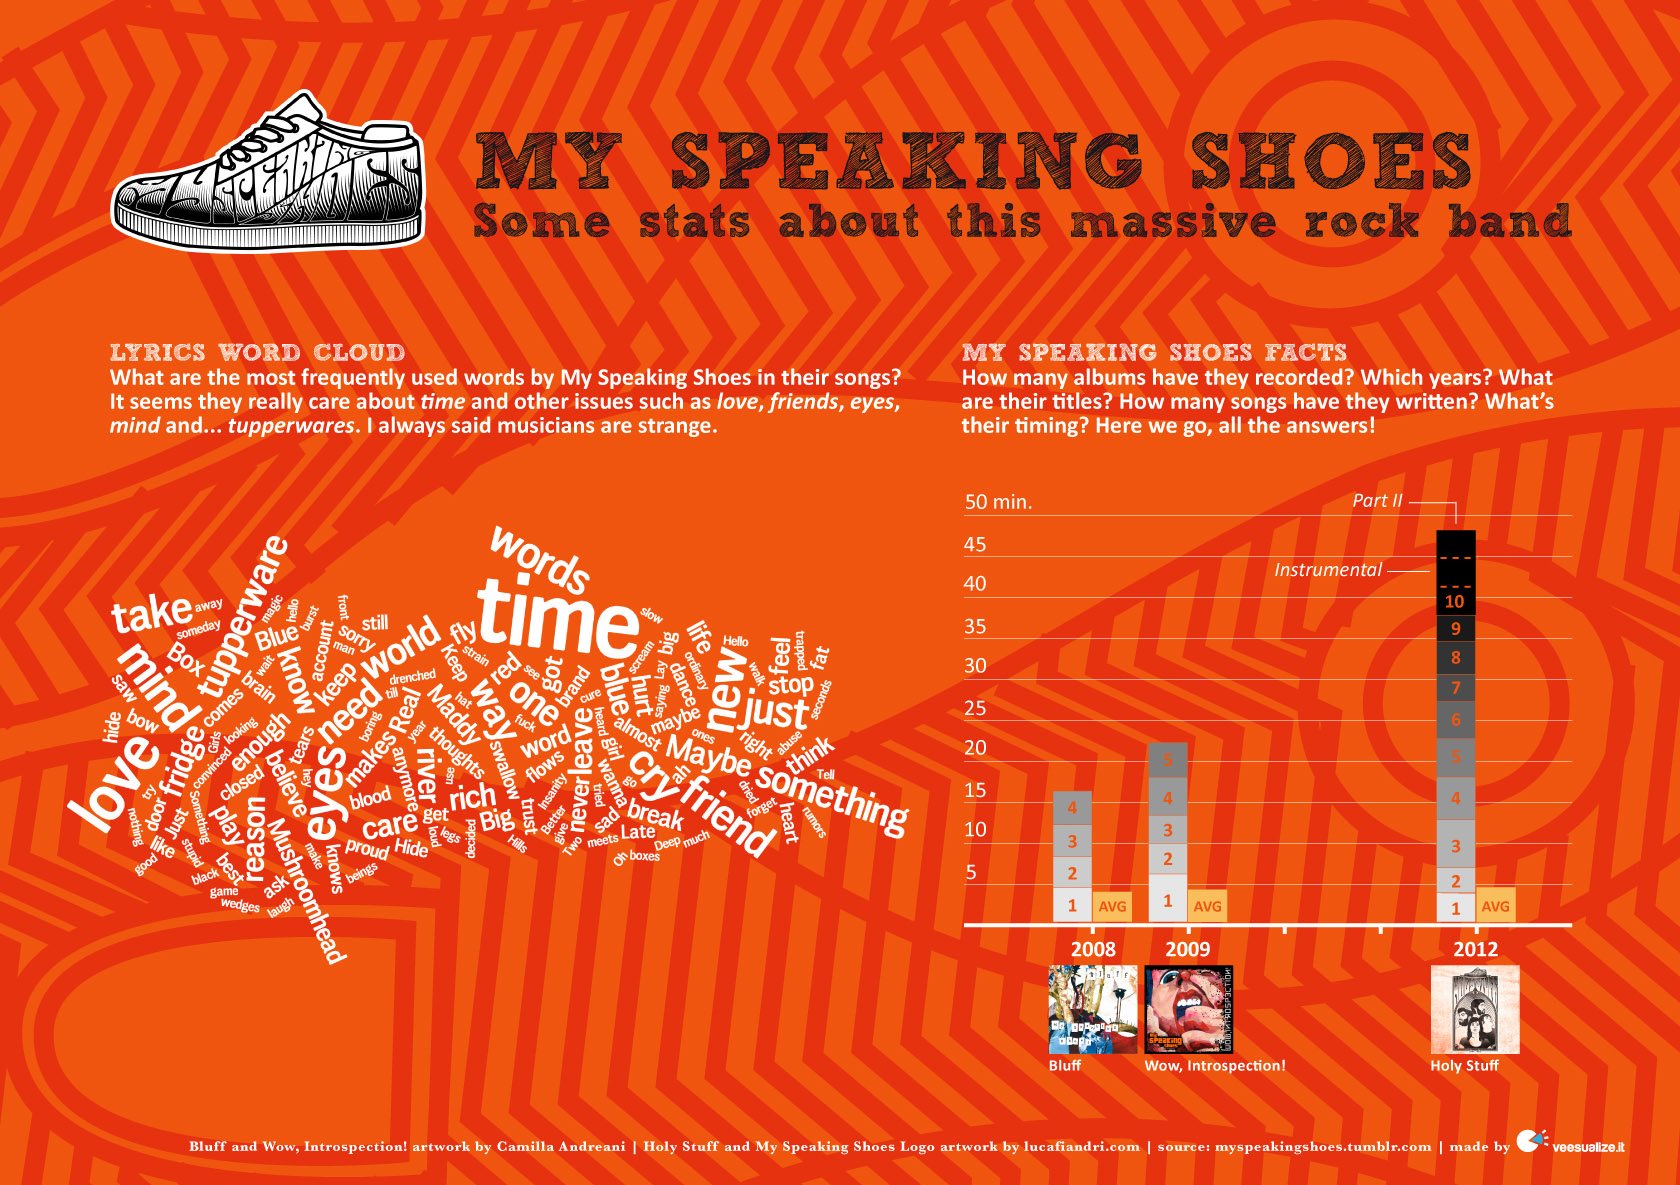 My Speaking Shoes, some stats